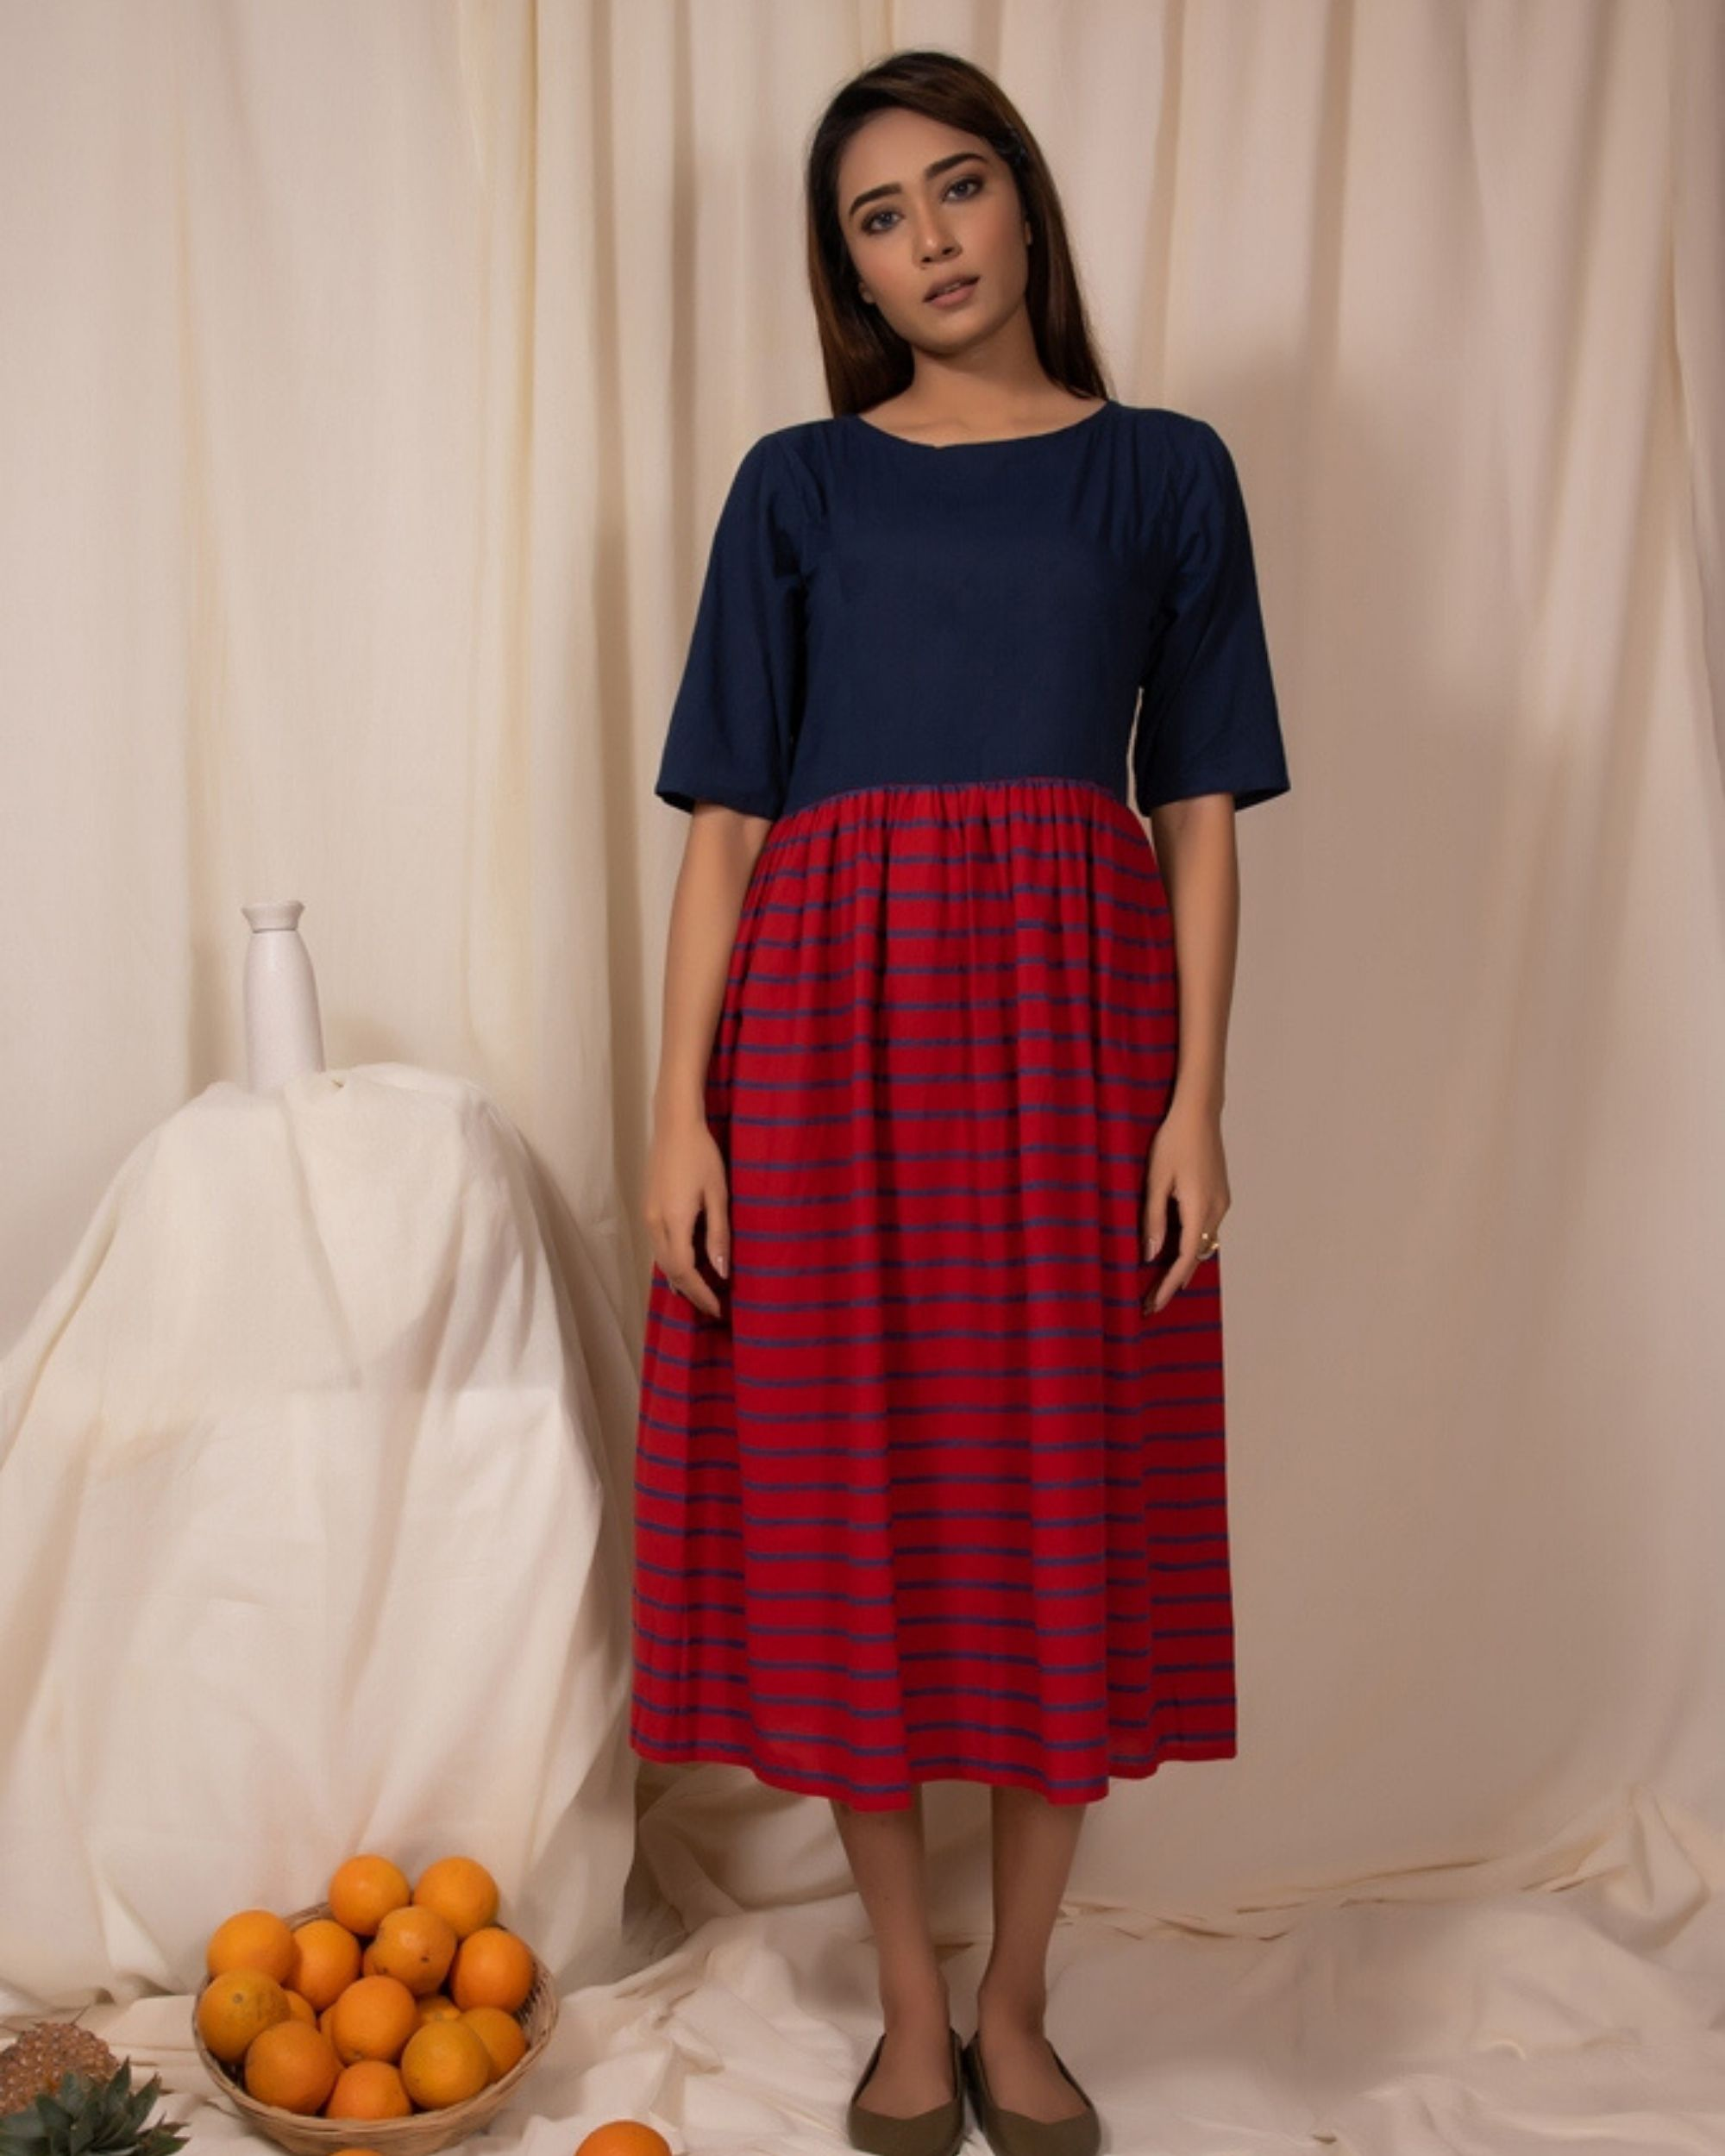 Indigo and red gathered dress with stripes detailing